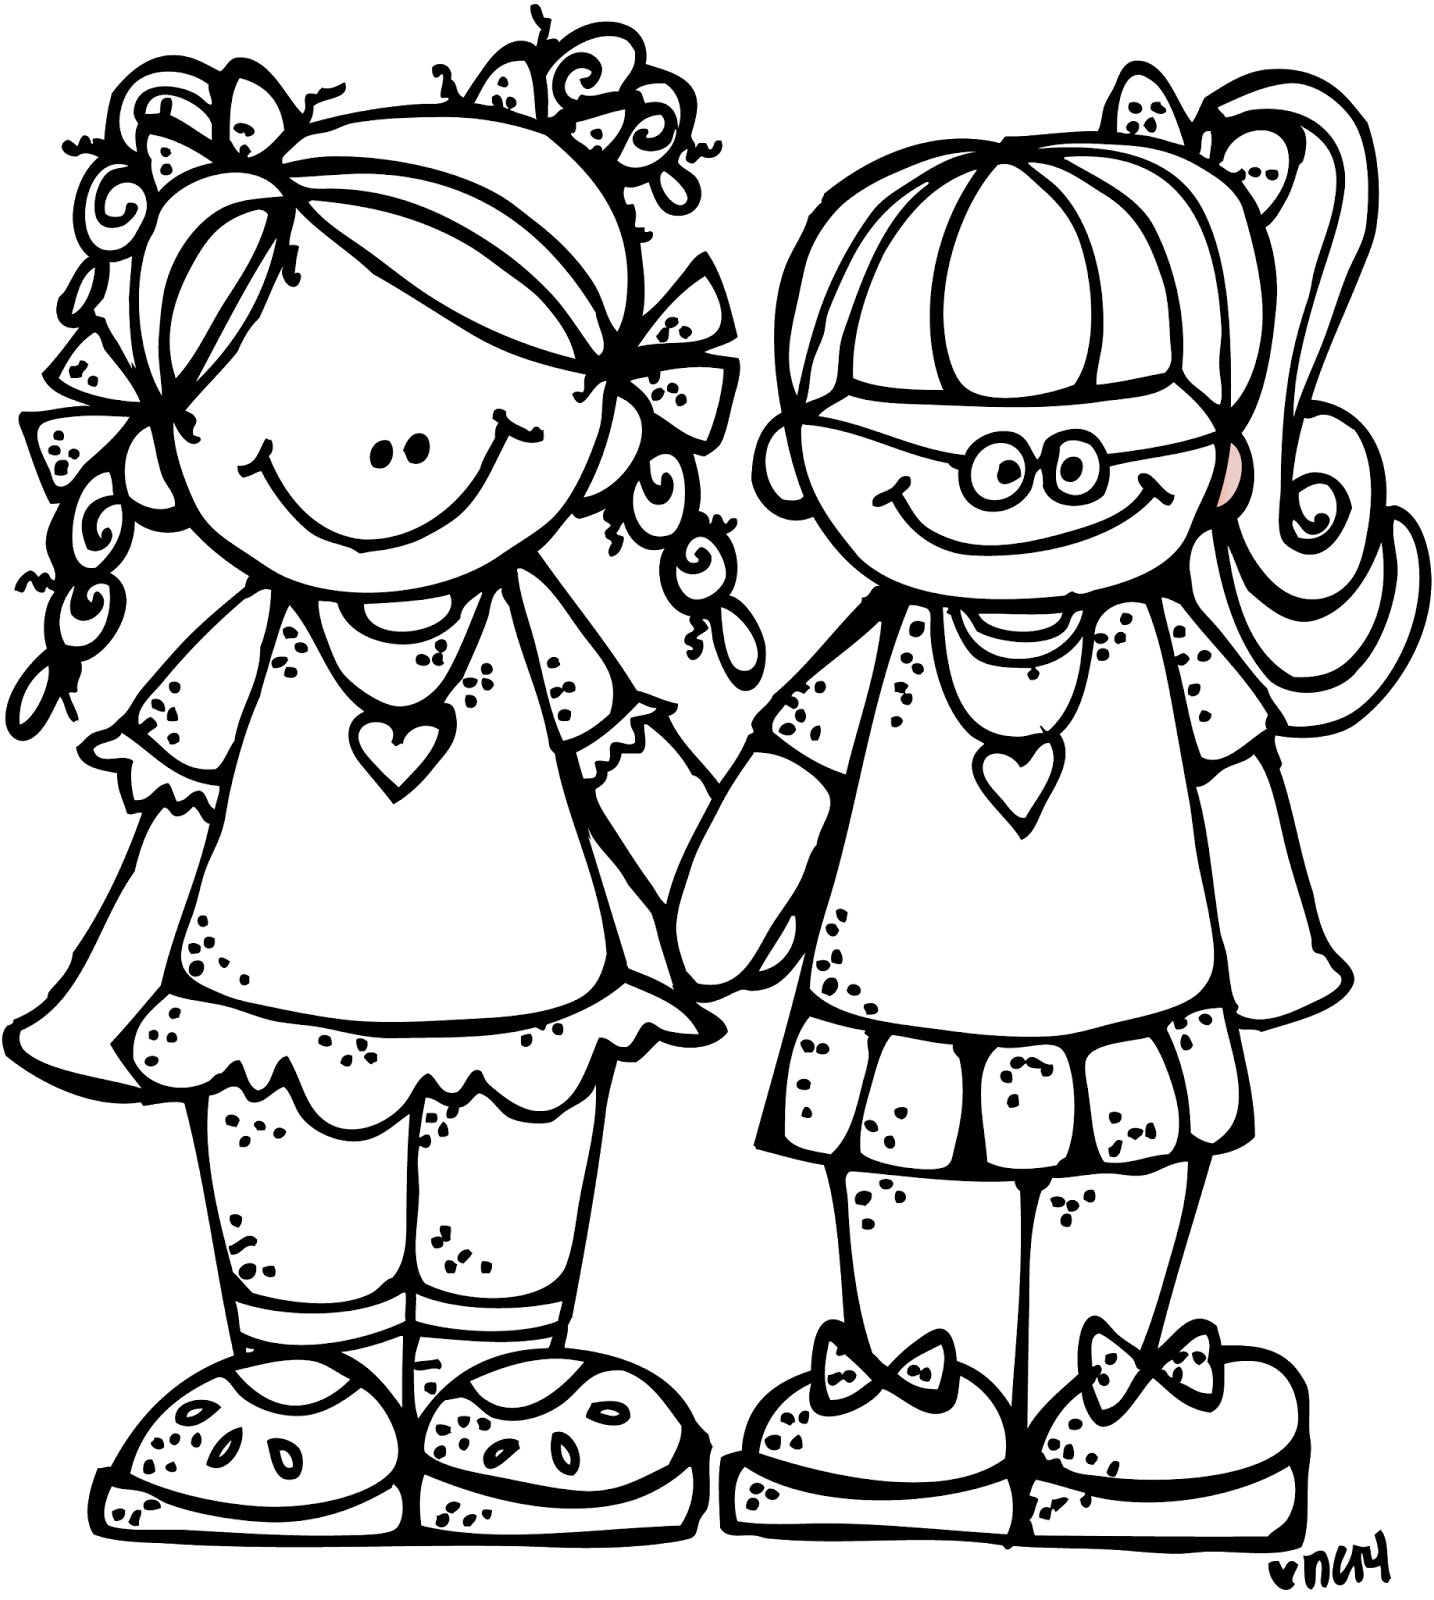 Star student clipart black and white svg transparent library Friends Clipart Black And White Free collection | Download and share ... svg transparent library